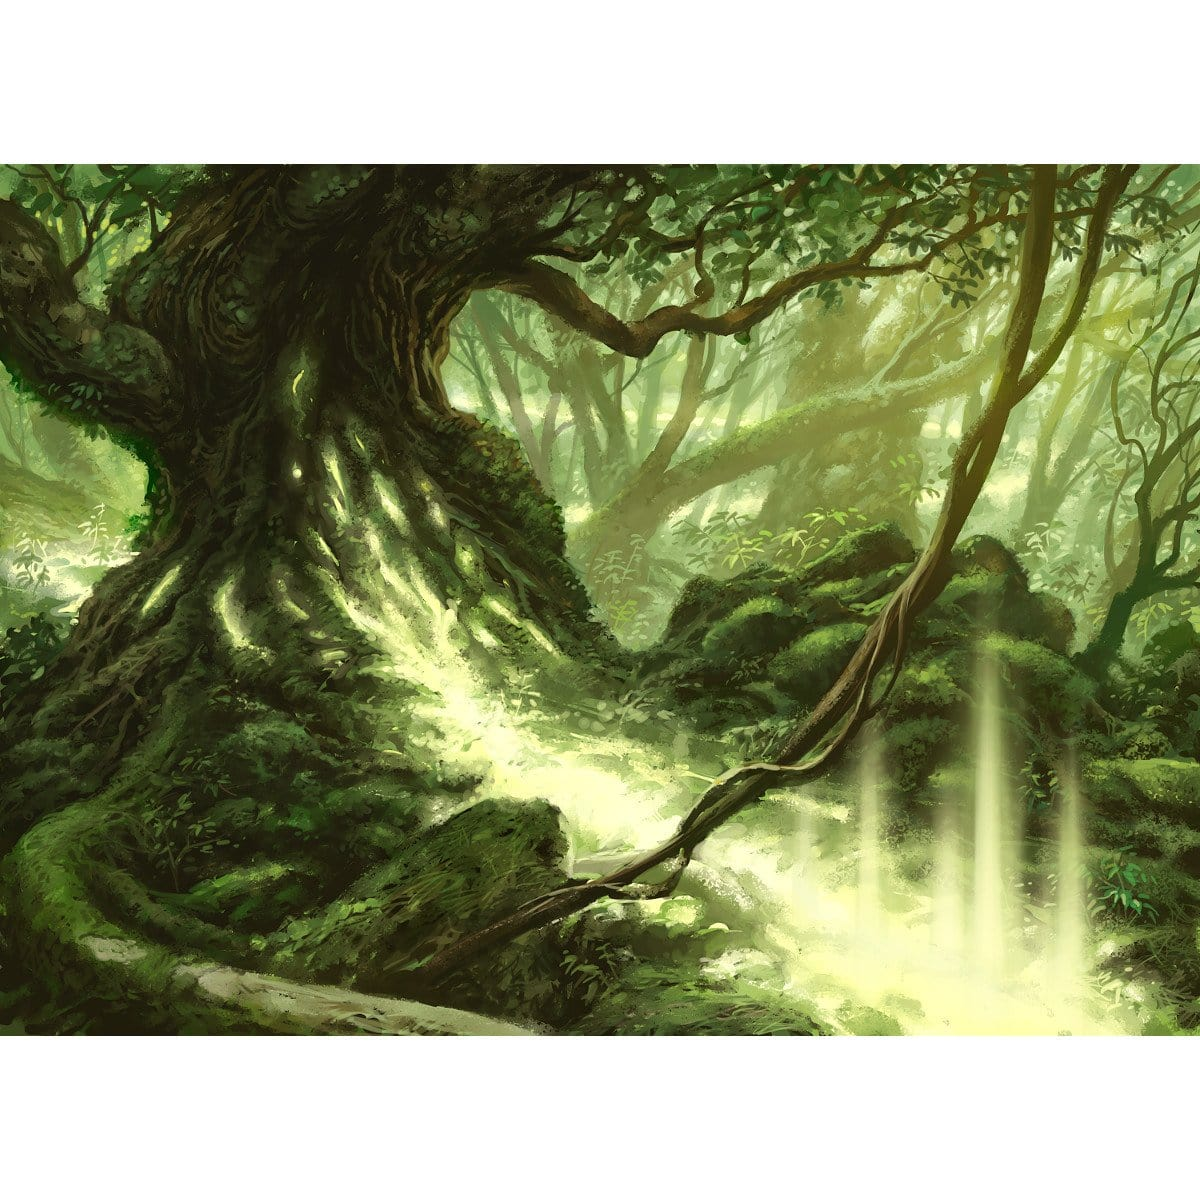 Leyline of Vitality Print - Print - Original Magic Art - Accessories for Magic the Gathering and other card games